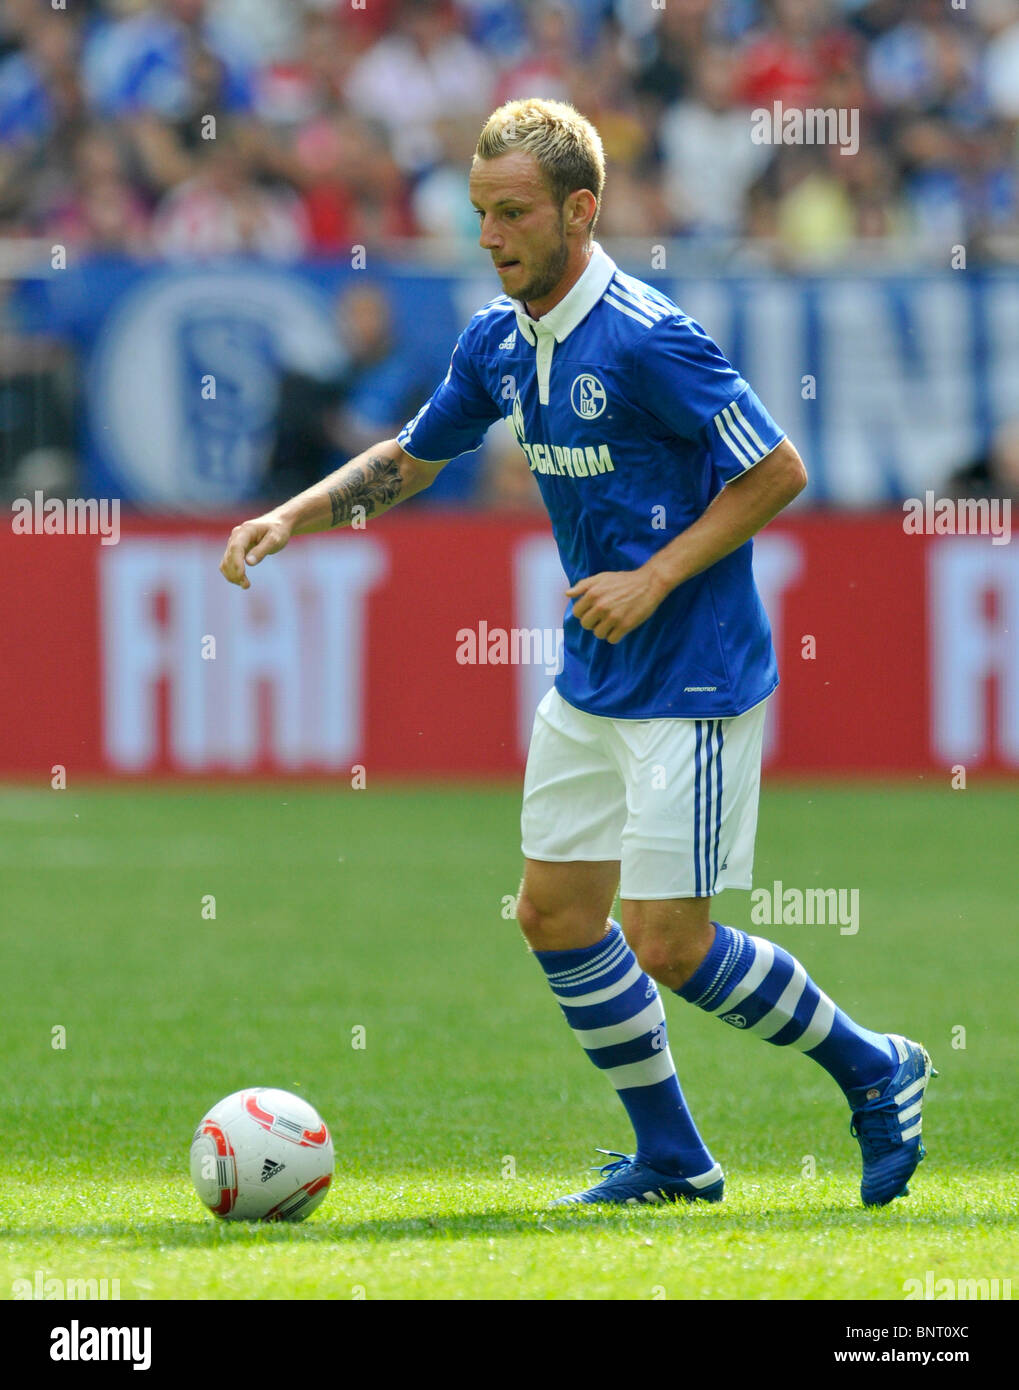 Ivan Rakitic FC Schalke 04 Stock Royalty Free Image